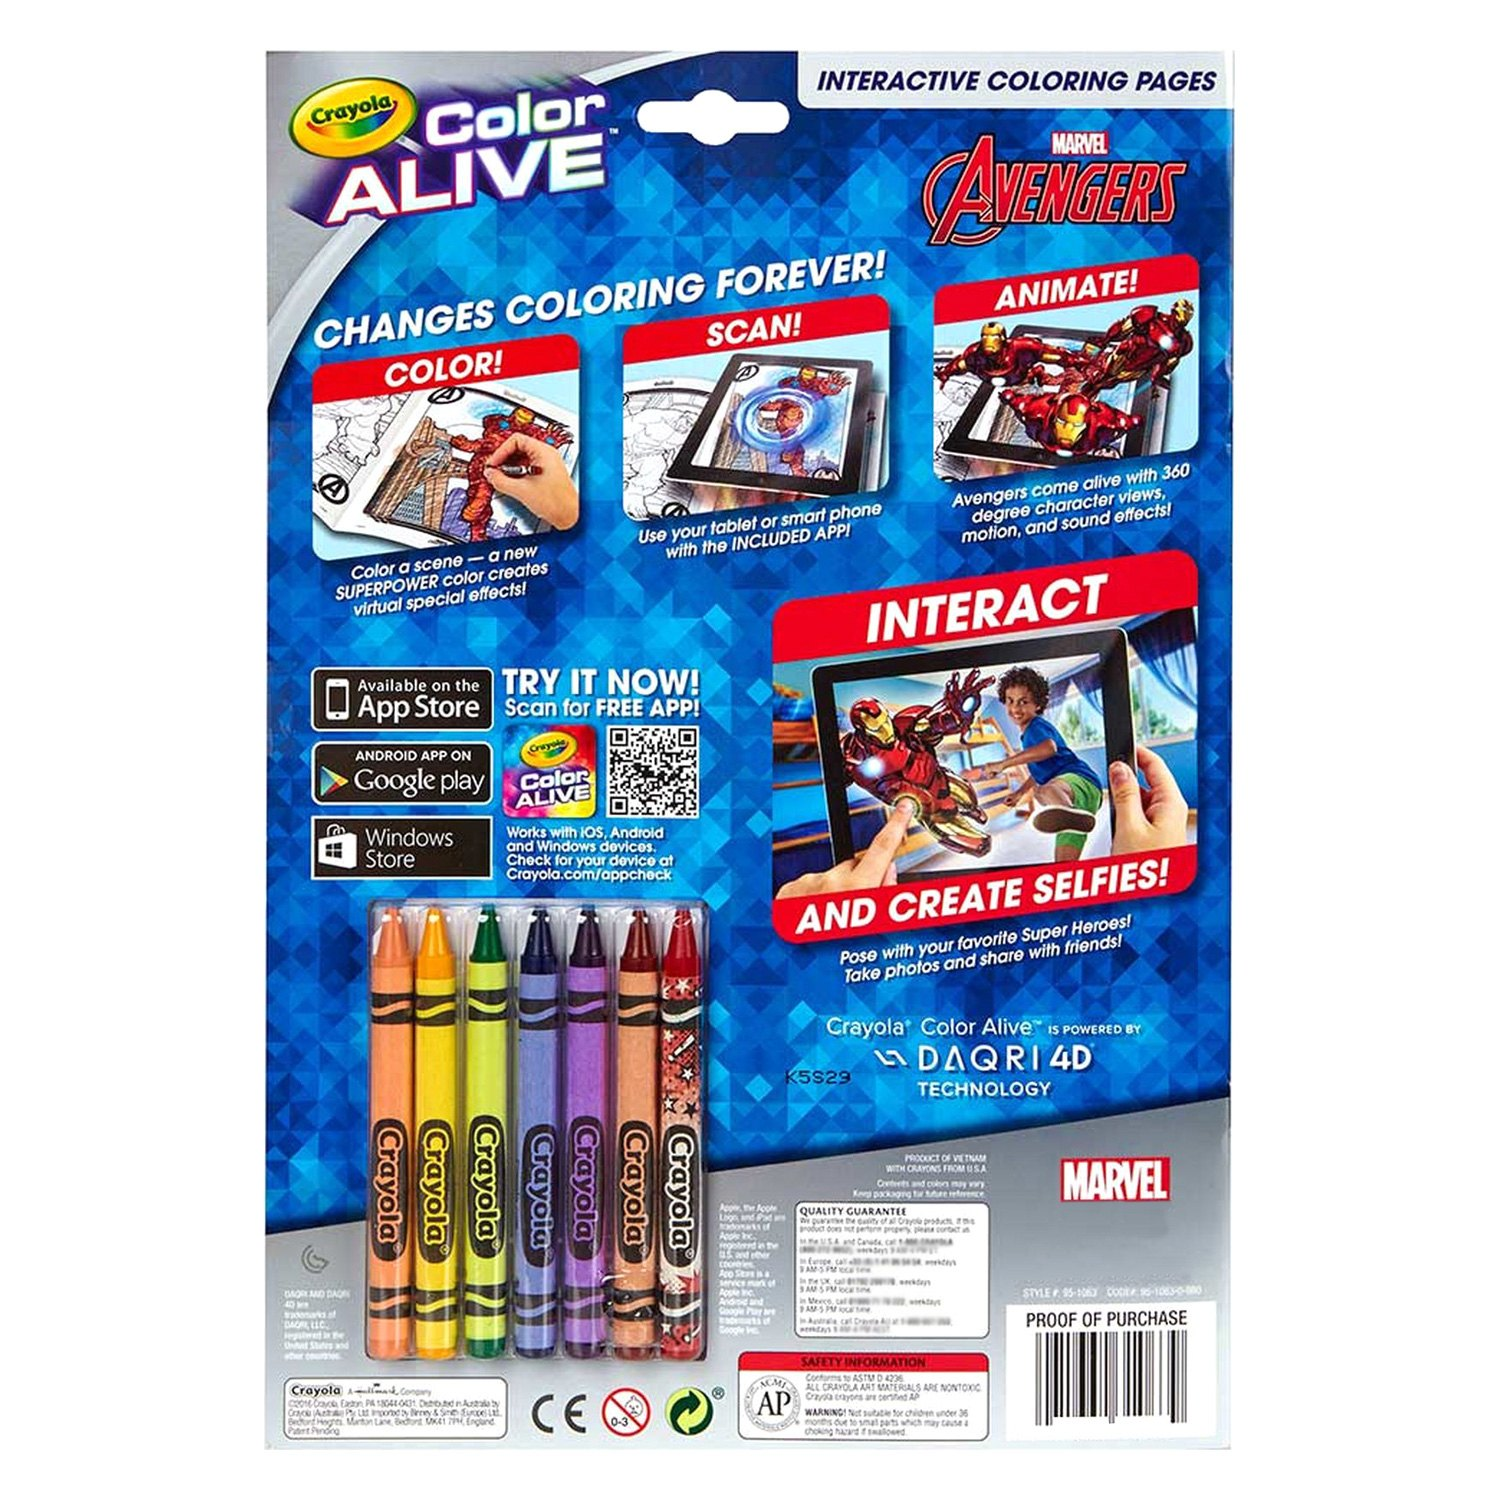 crayola 95 1063 avengers color alive action coloring pages